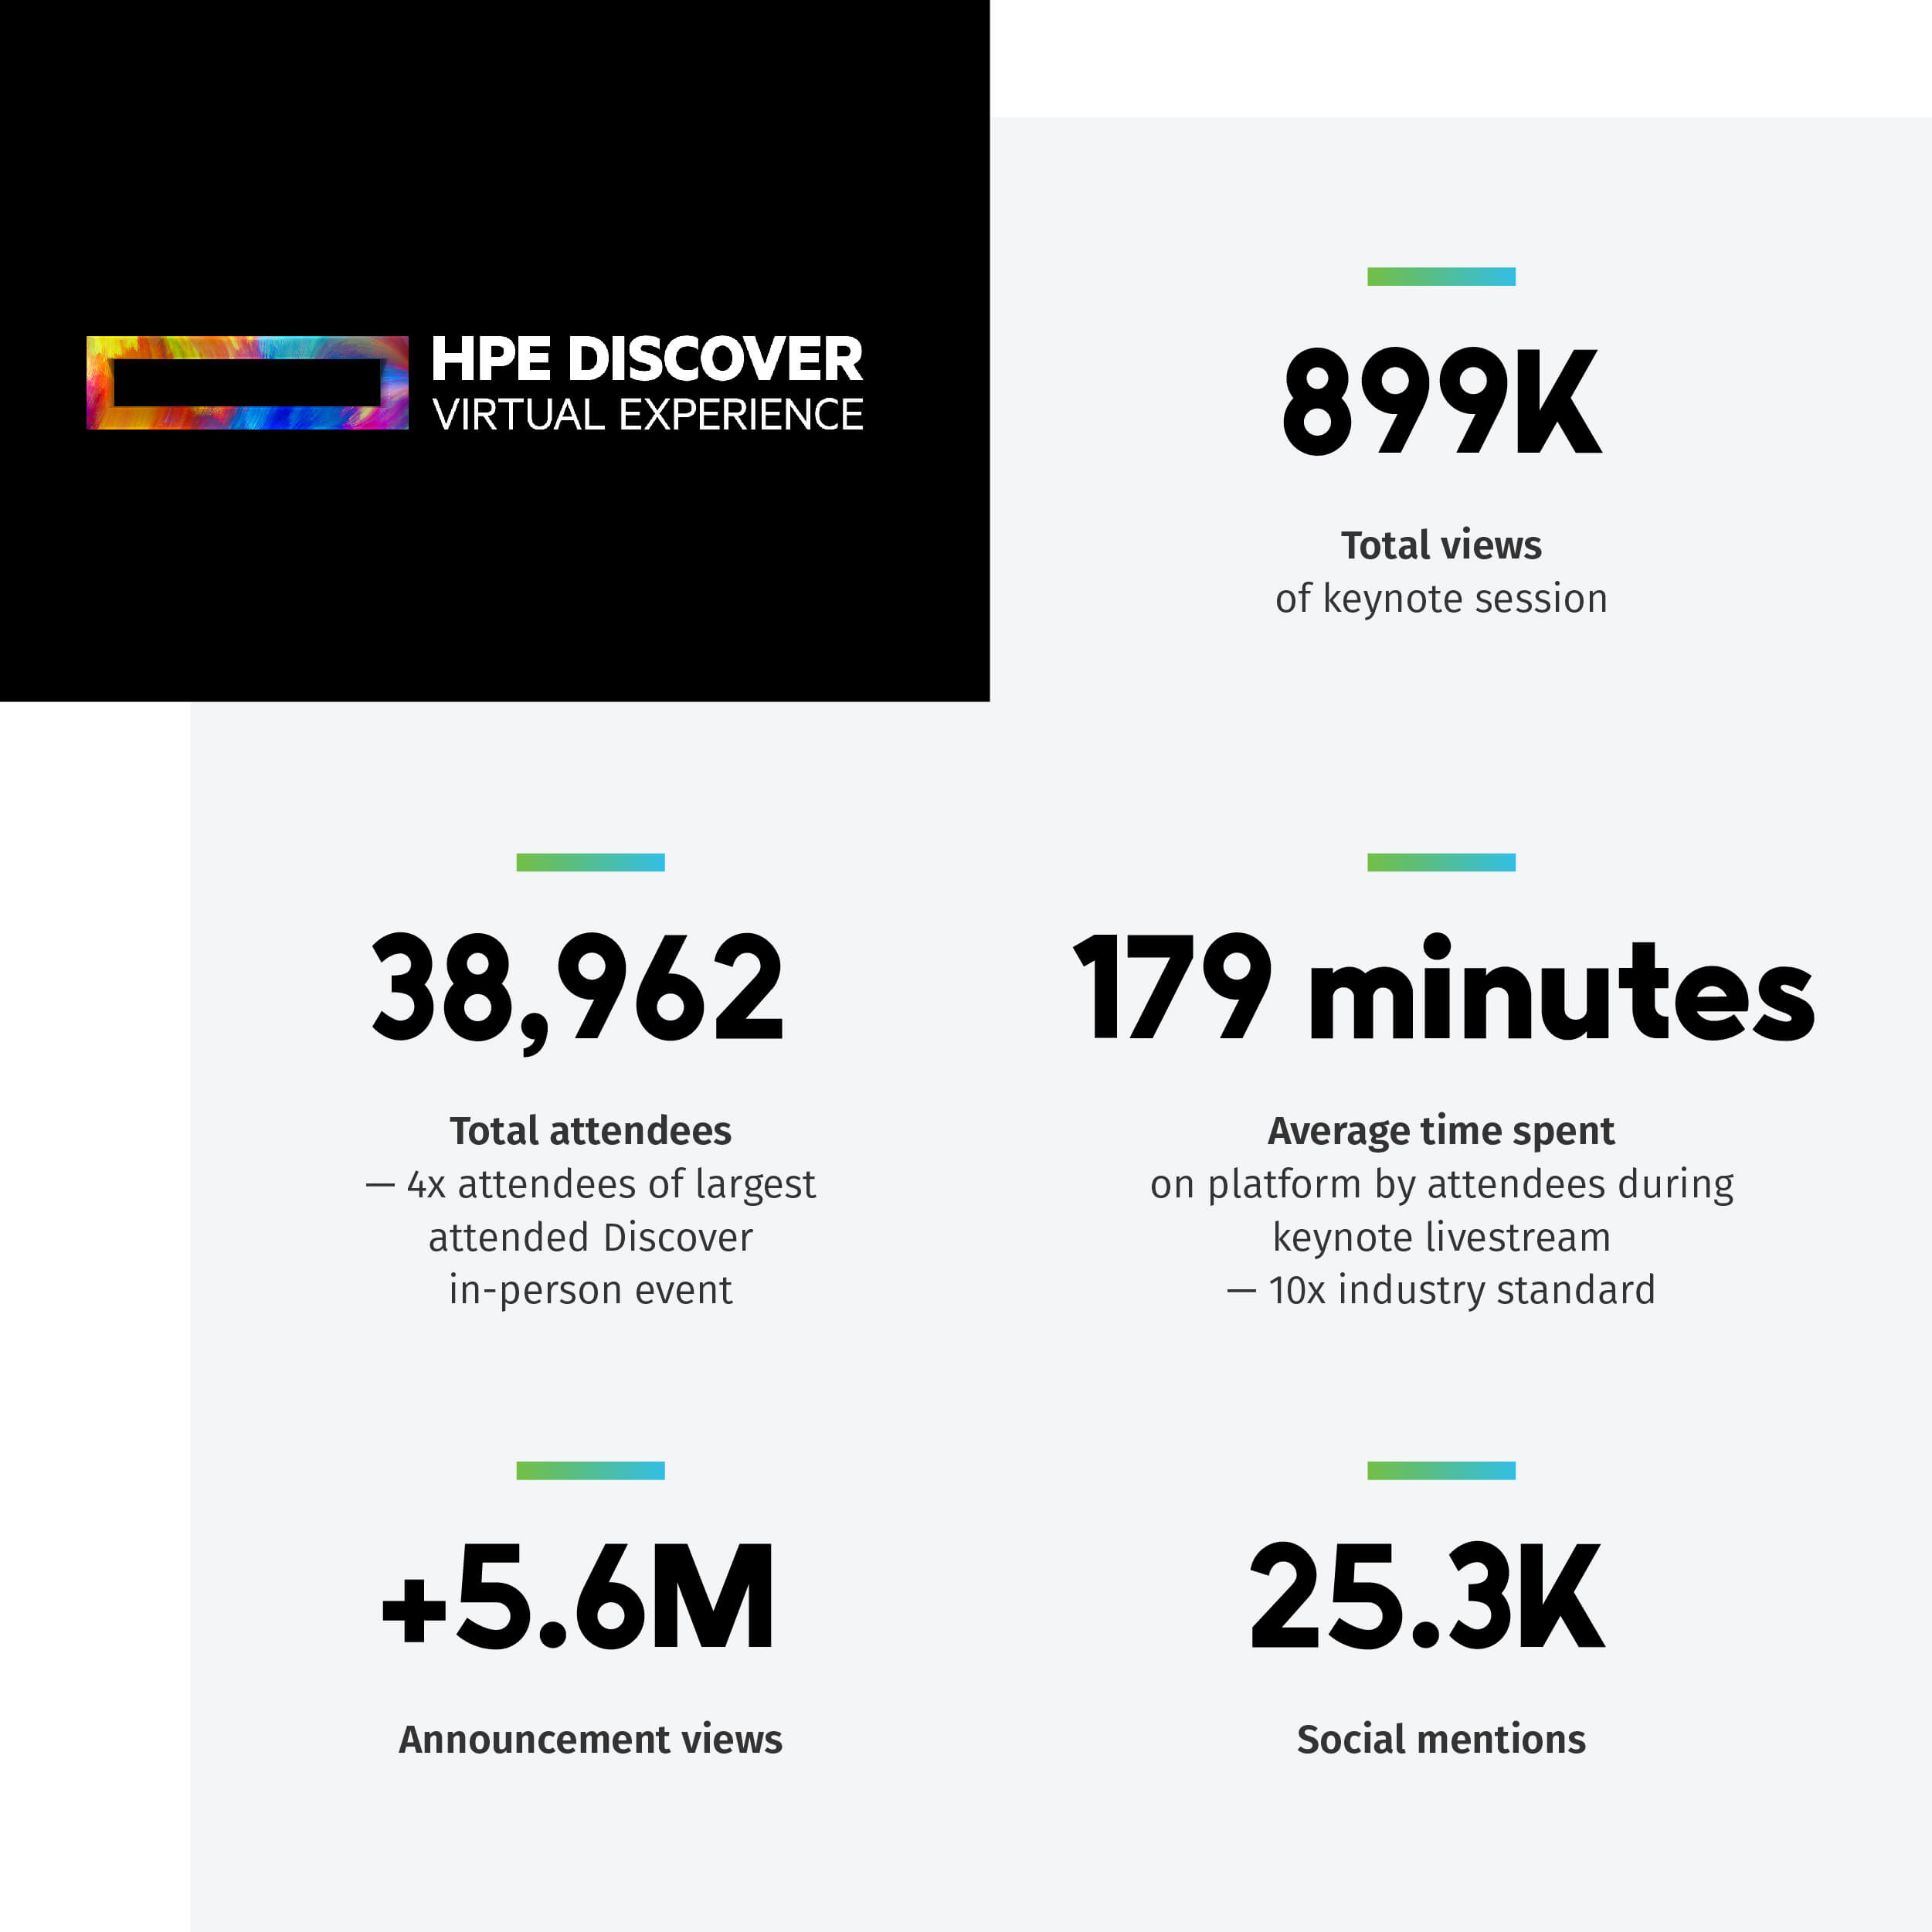 HPE Discover Virtual Experience 2020 results: 38,962  Total attendees—4x the most-attended Discover in-person event  179 minutes Average time spent on platform by attendees during keynote livestream—10x industry standard  899K Total views of keynote session  +5.6M Announcement views  25.3K Social mentions